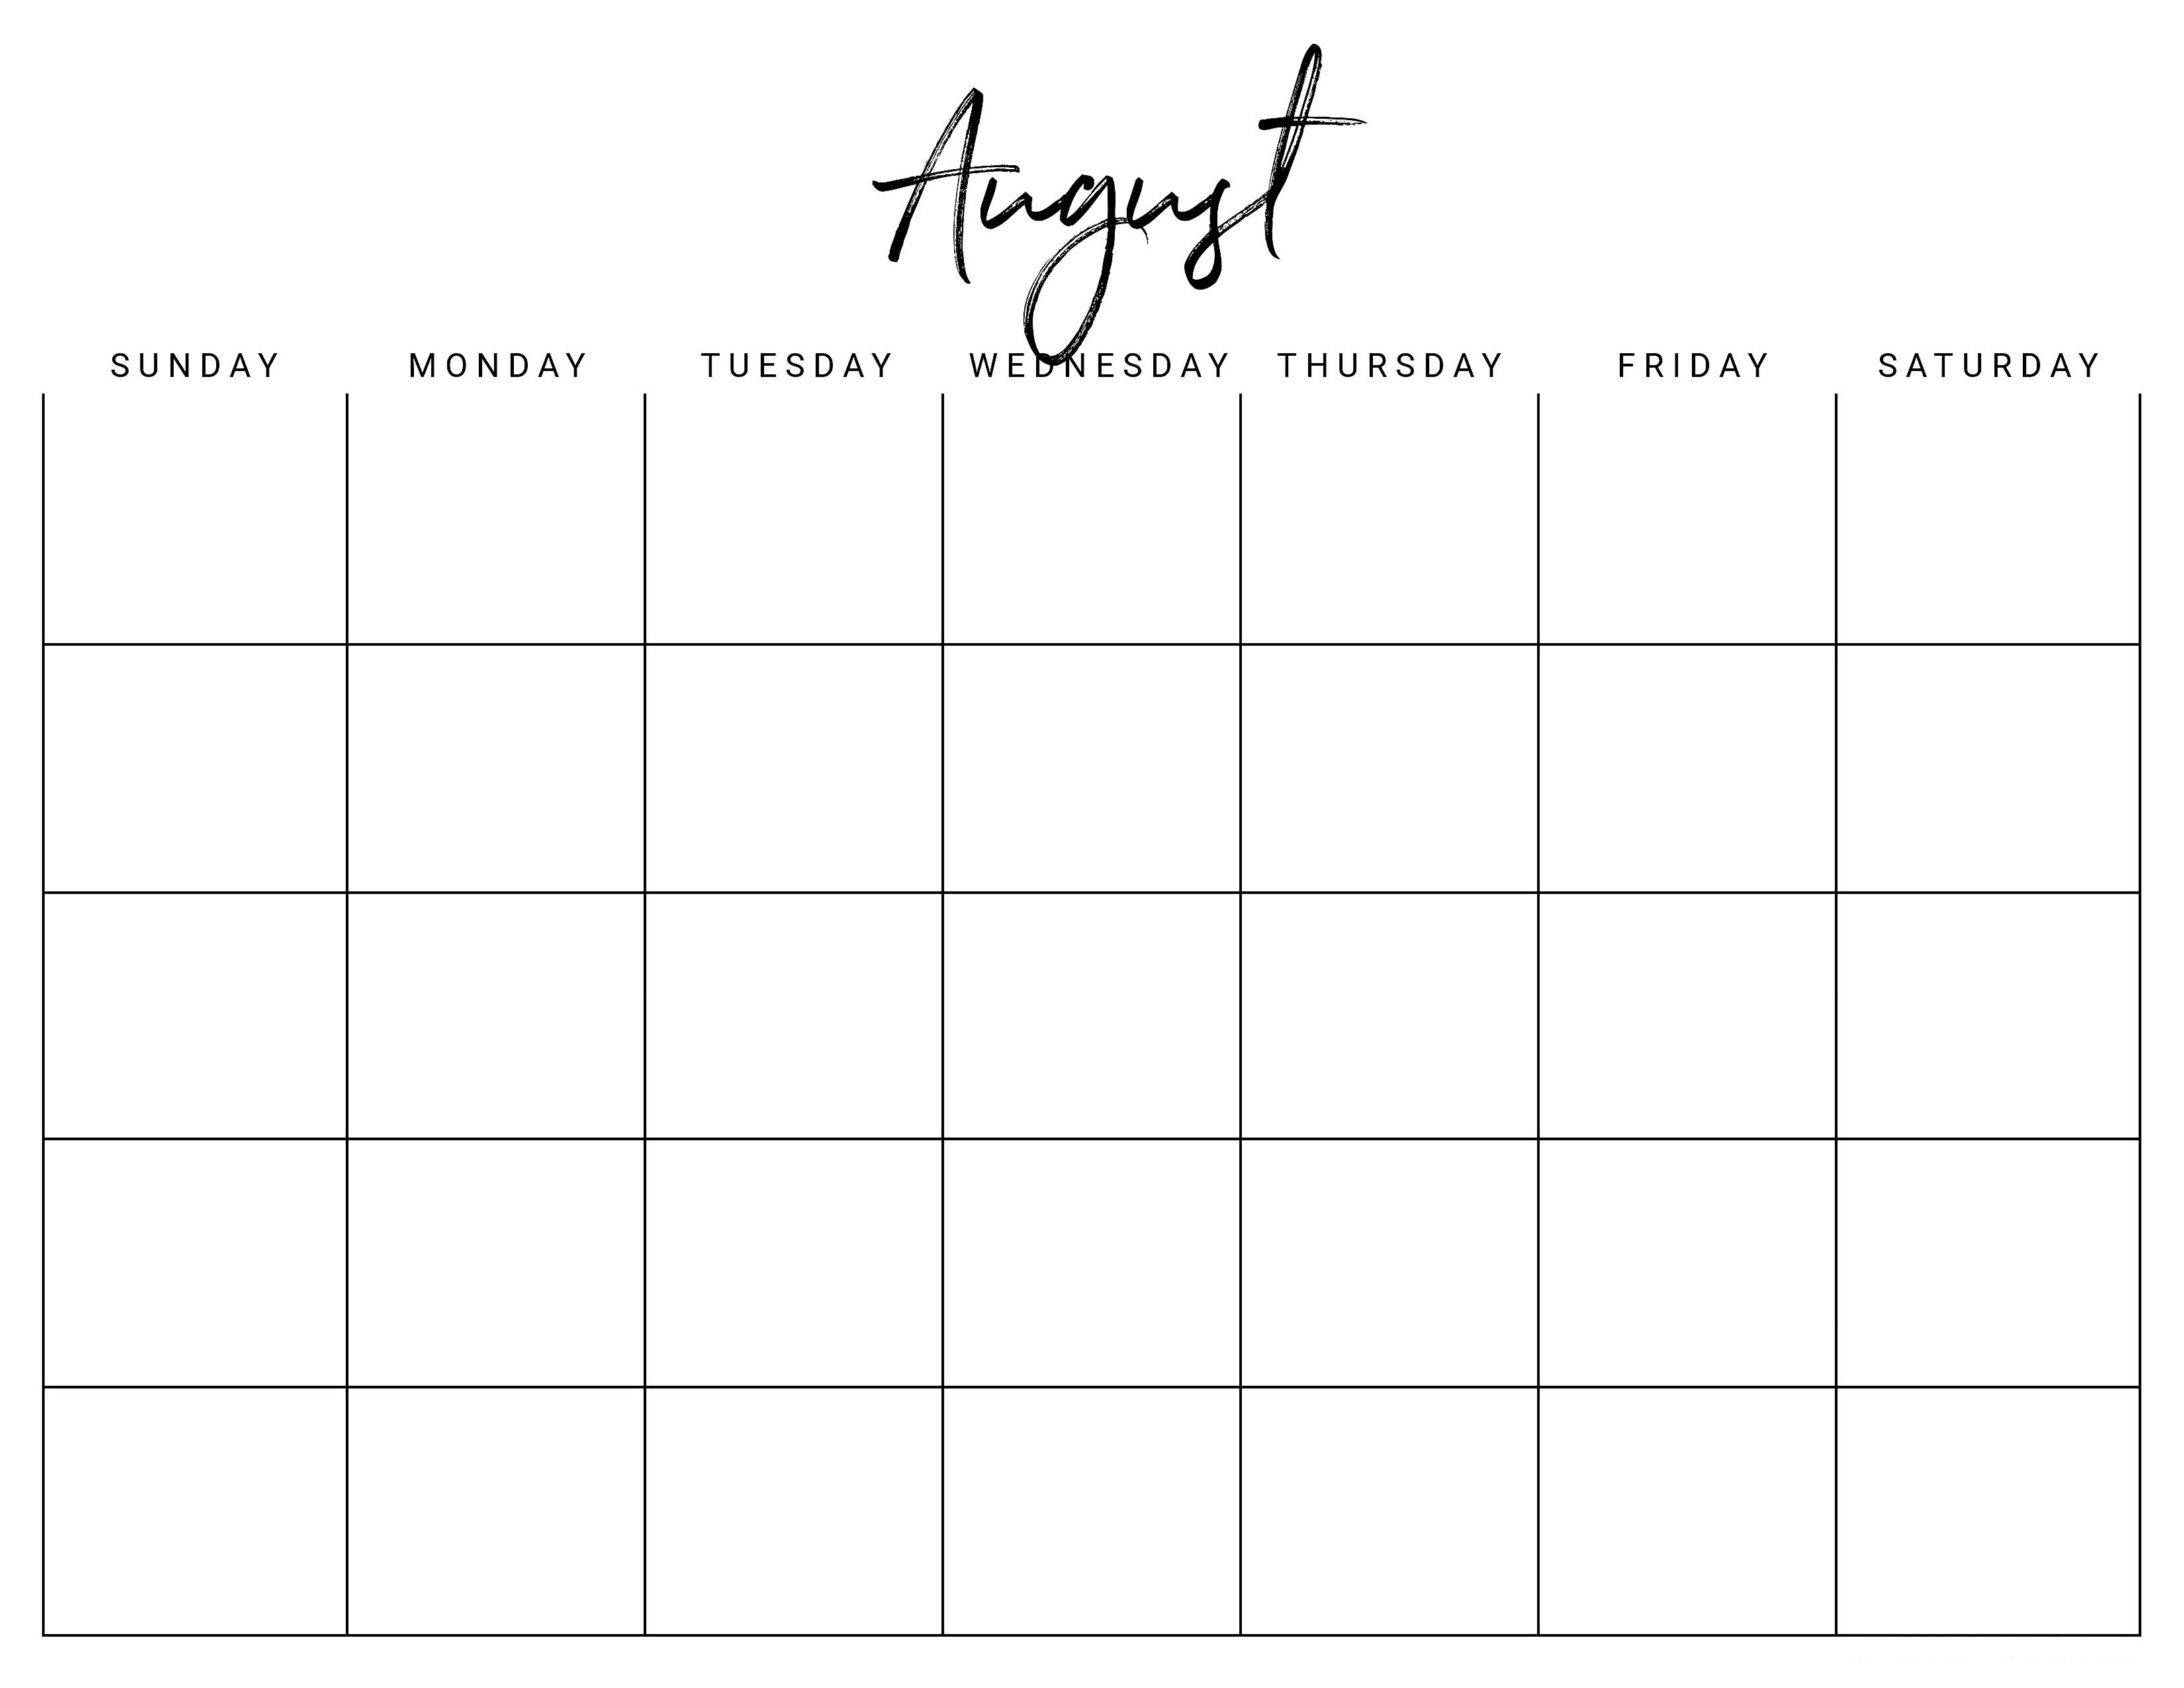 Calendar Free August Template With Holidays Dengan